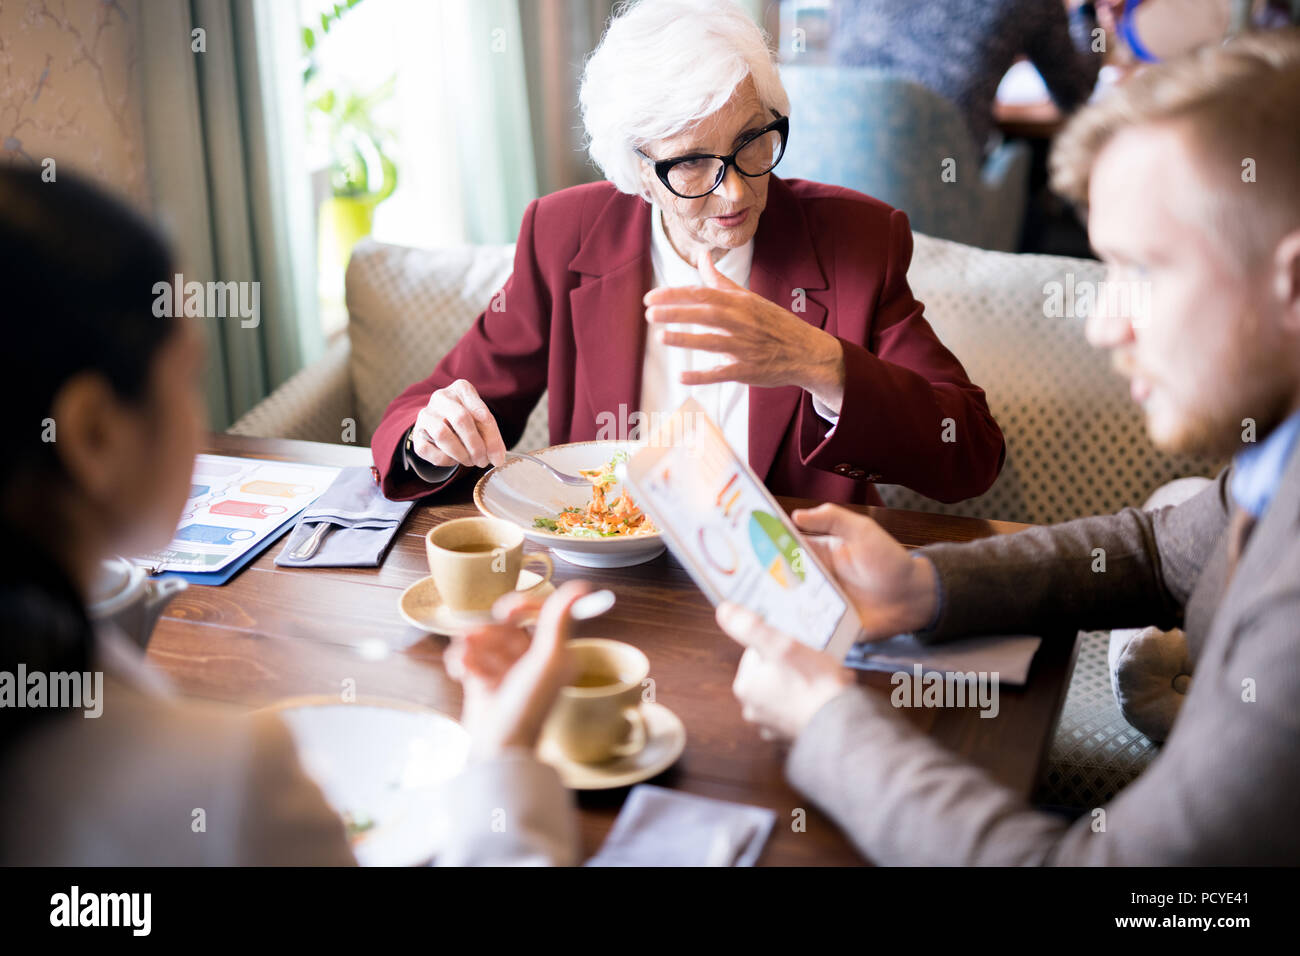 Business people at meeting - Stock Image